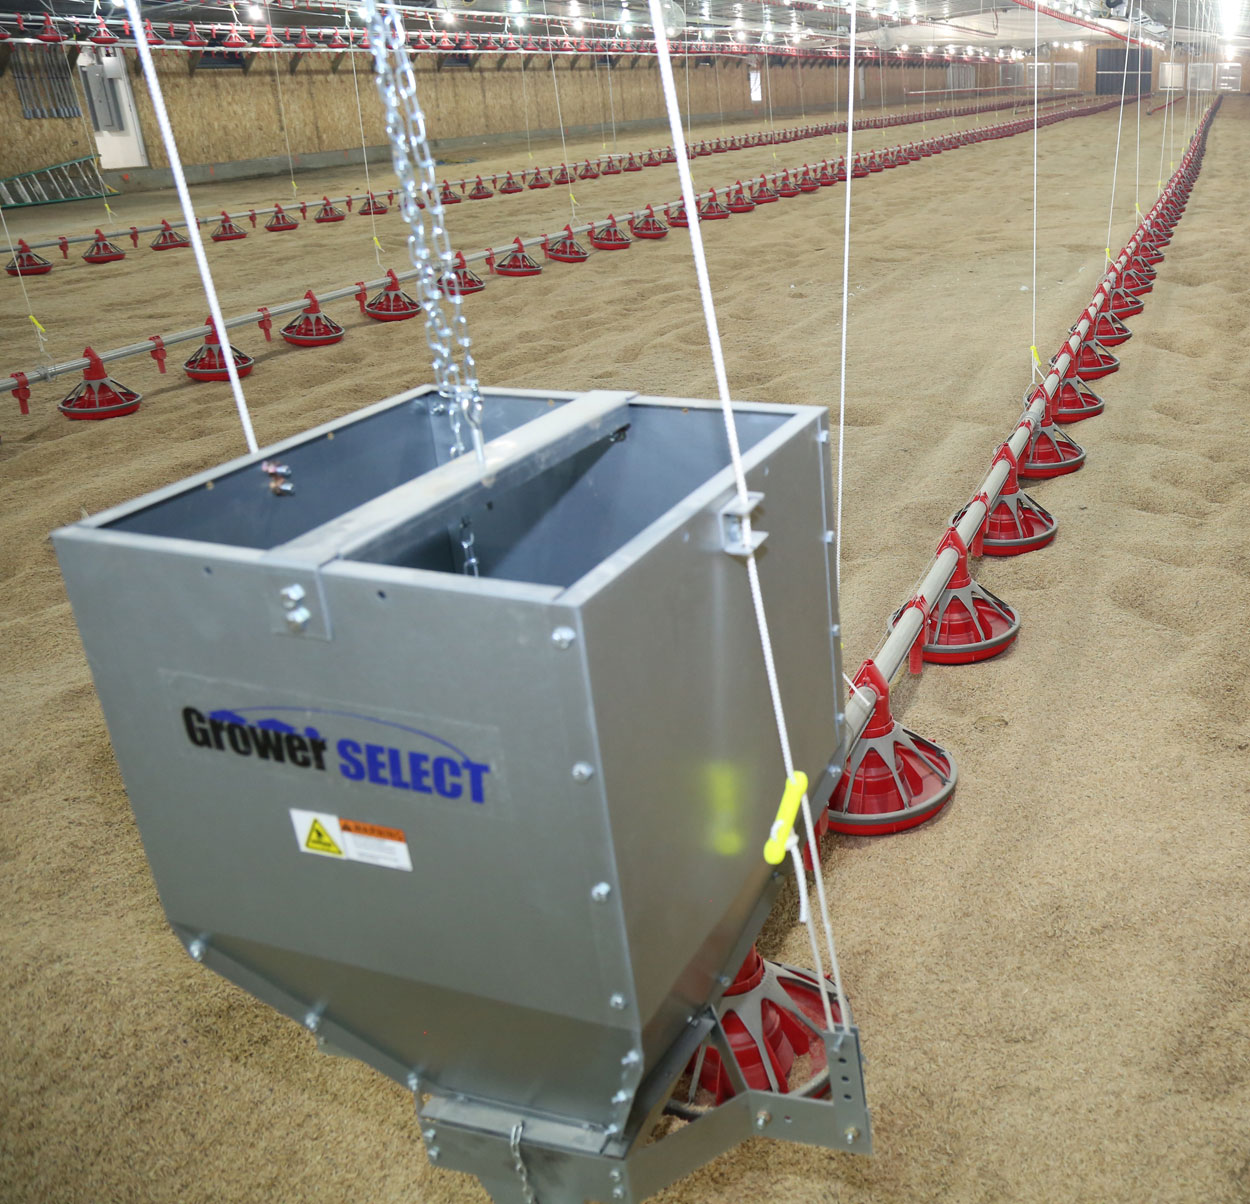 GrowerSELECT® poultry feed system components work together to keep your operation efficient and help maximize the conversion potential of every flock.